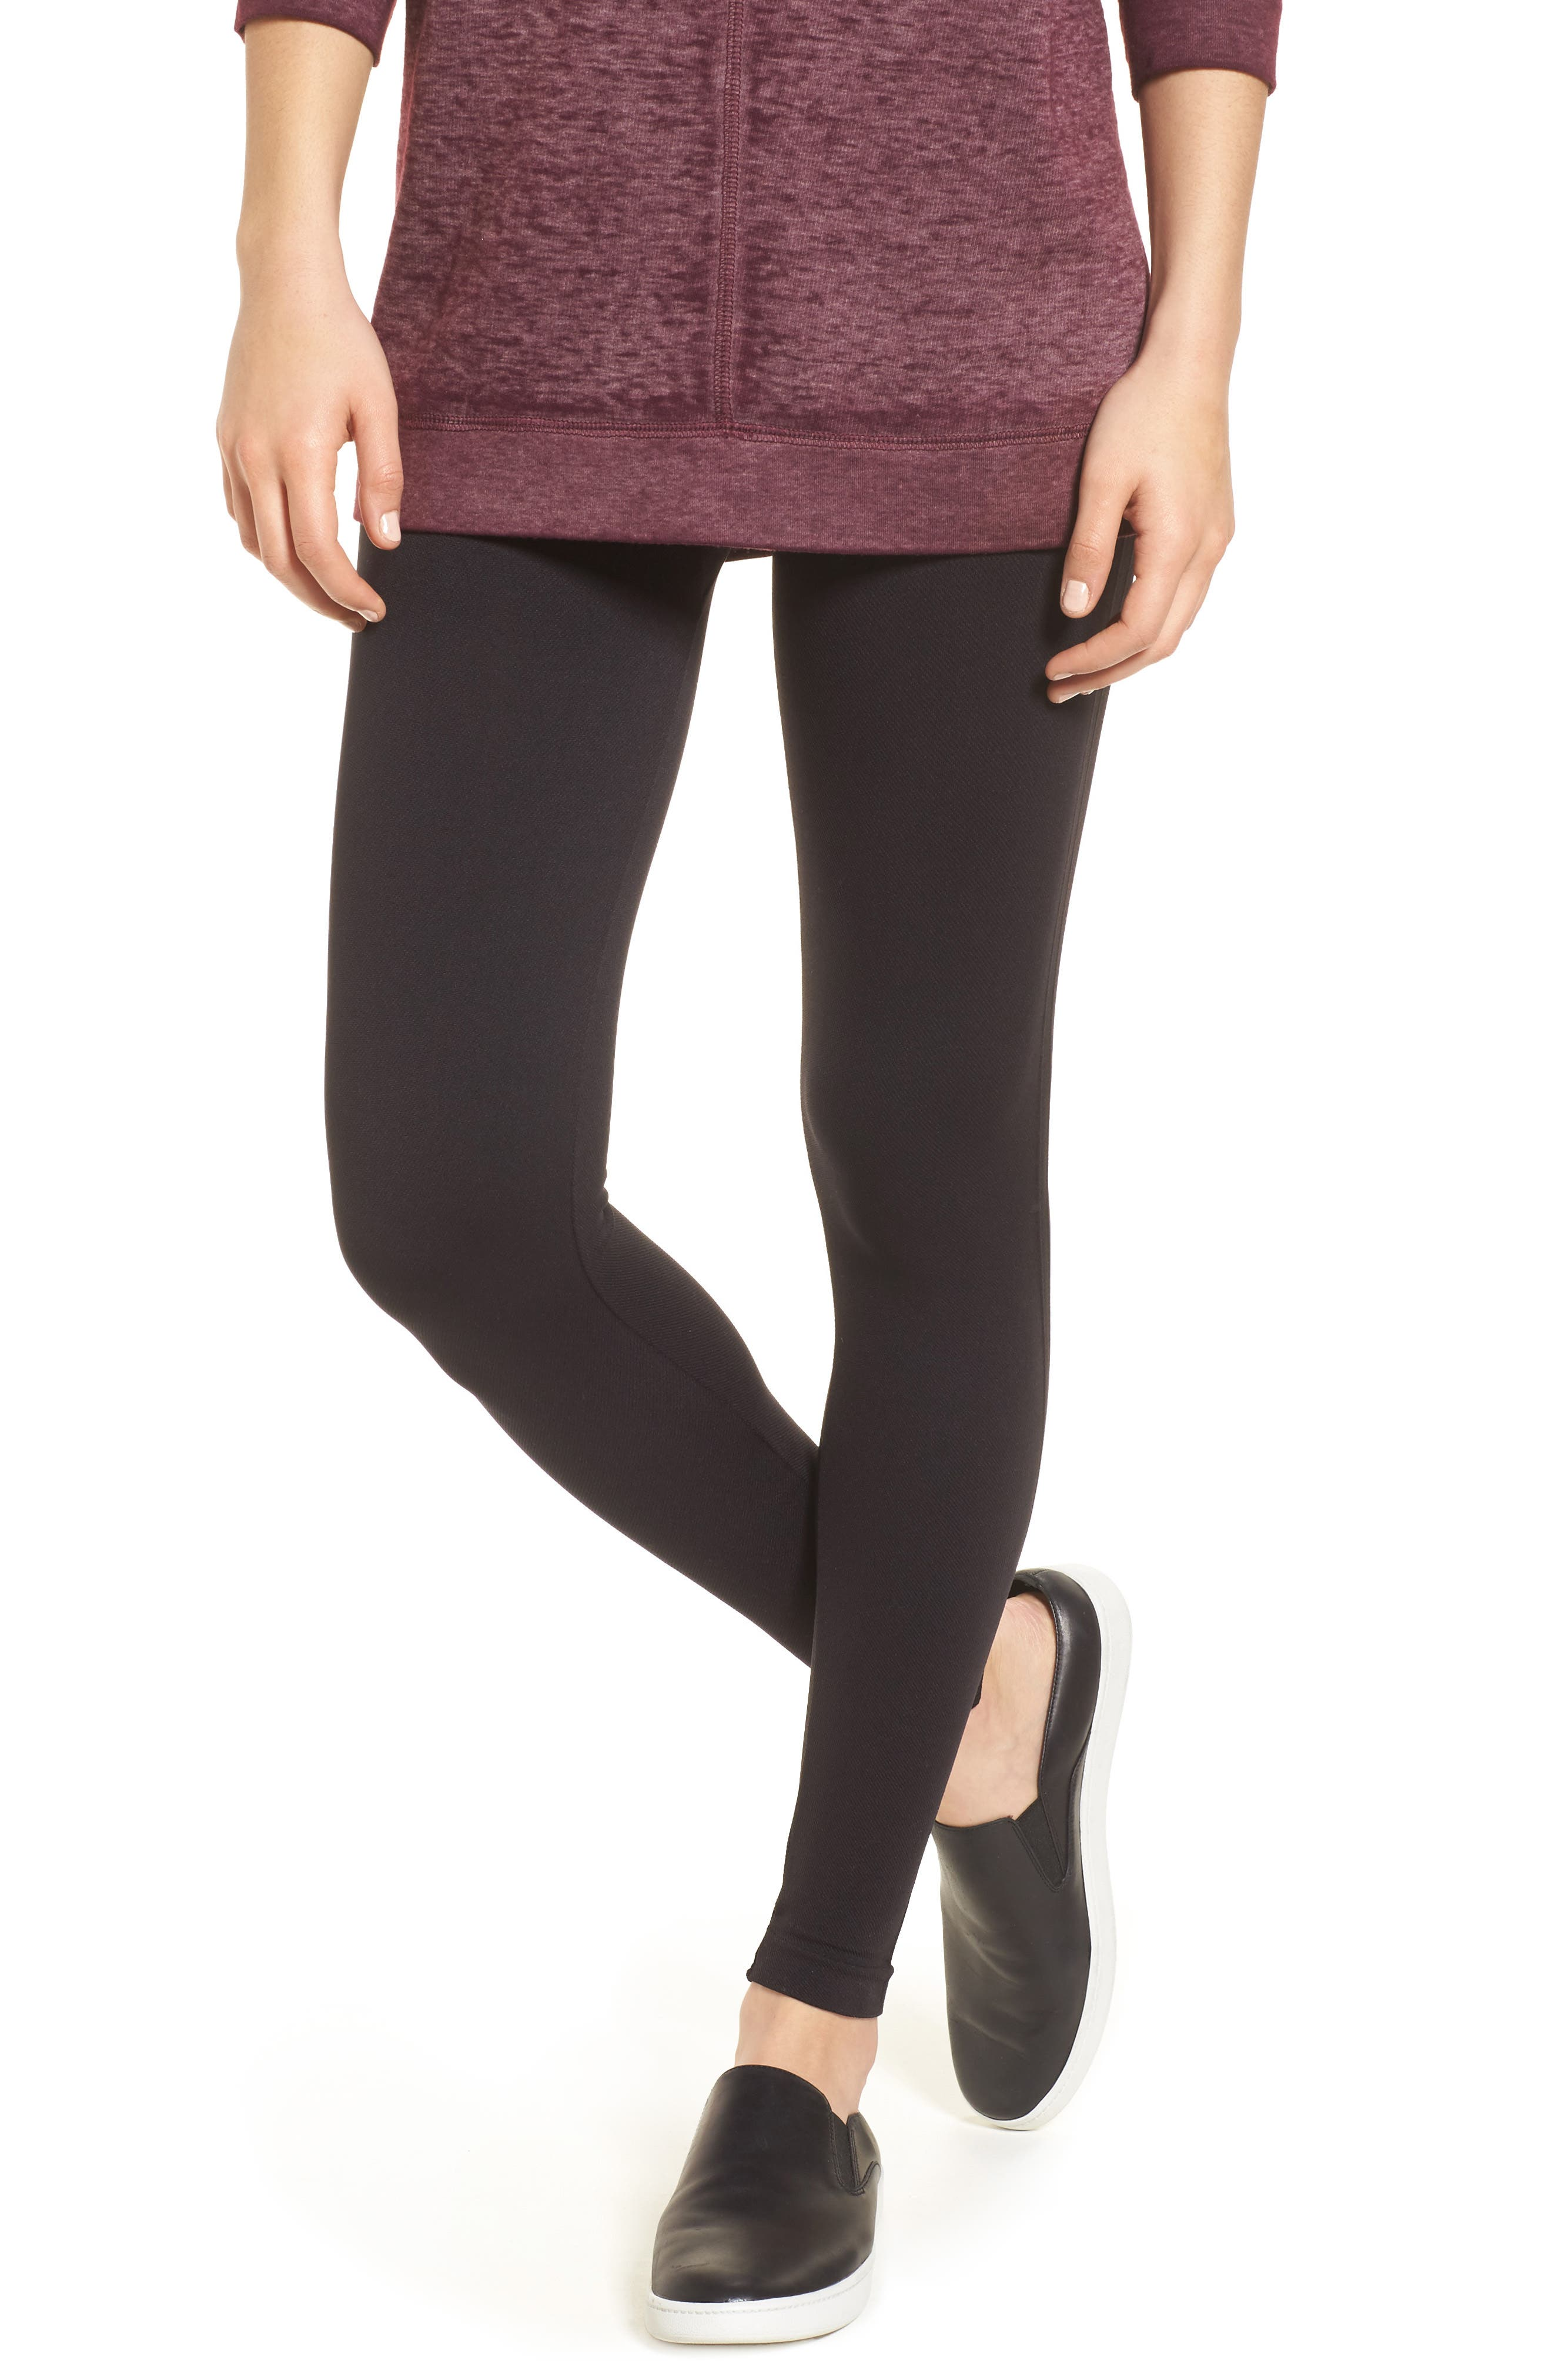 Look At Me Now High Waist Seamless Leggings,                         Main,                         color, Very Black